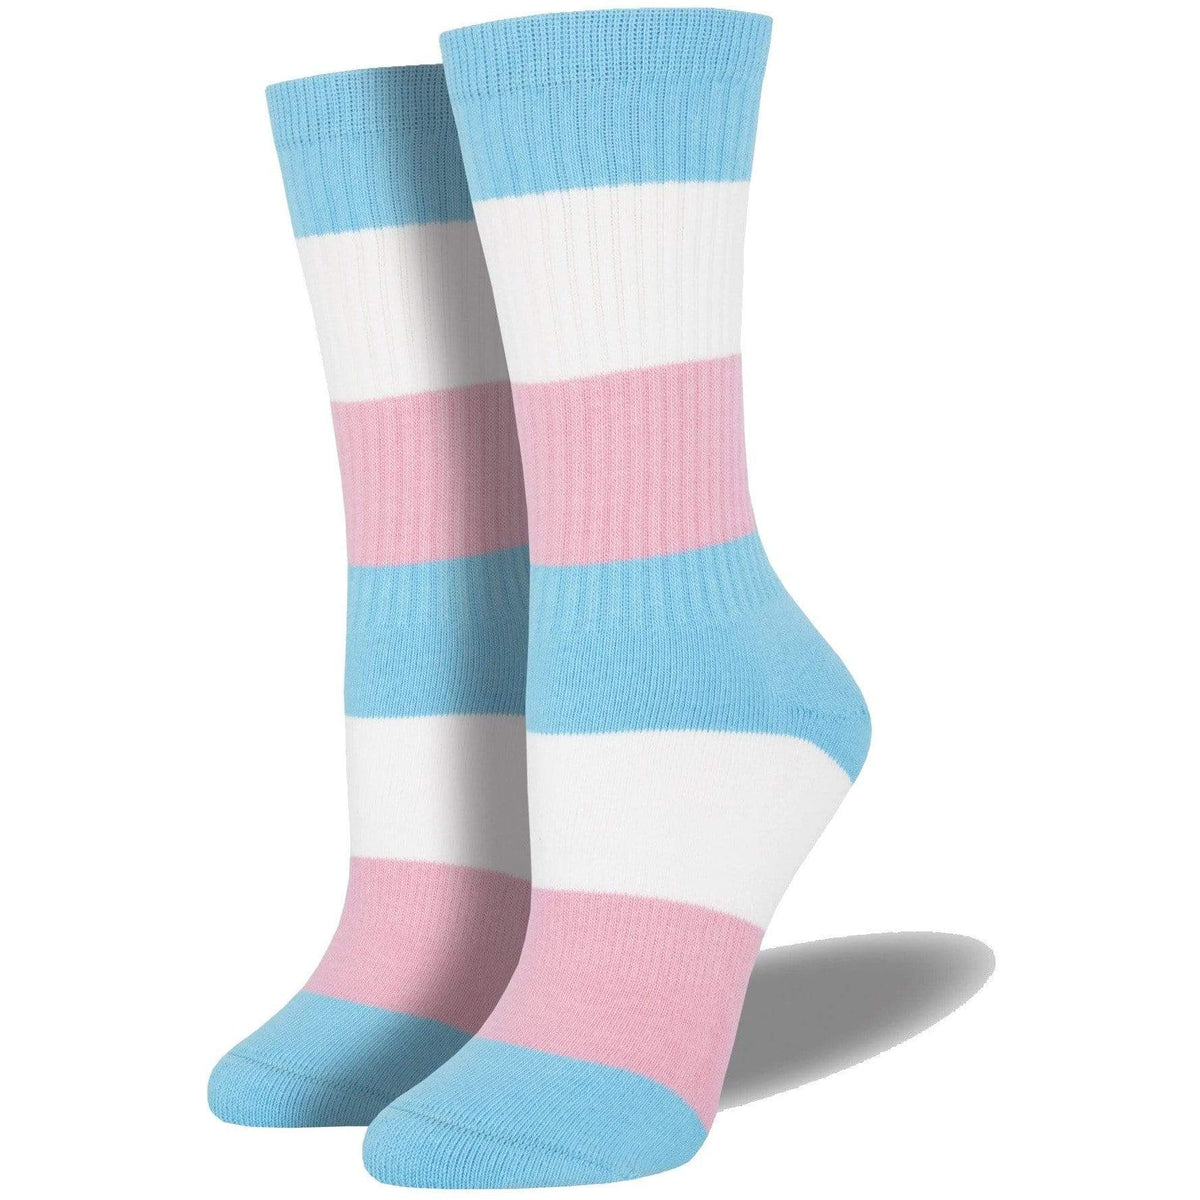 Pride socks - Trans - L/XL Sock Smith Clothing/Accessories